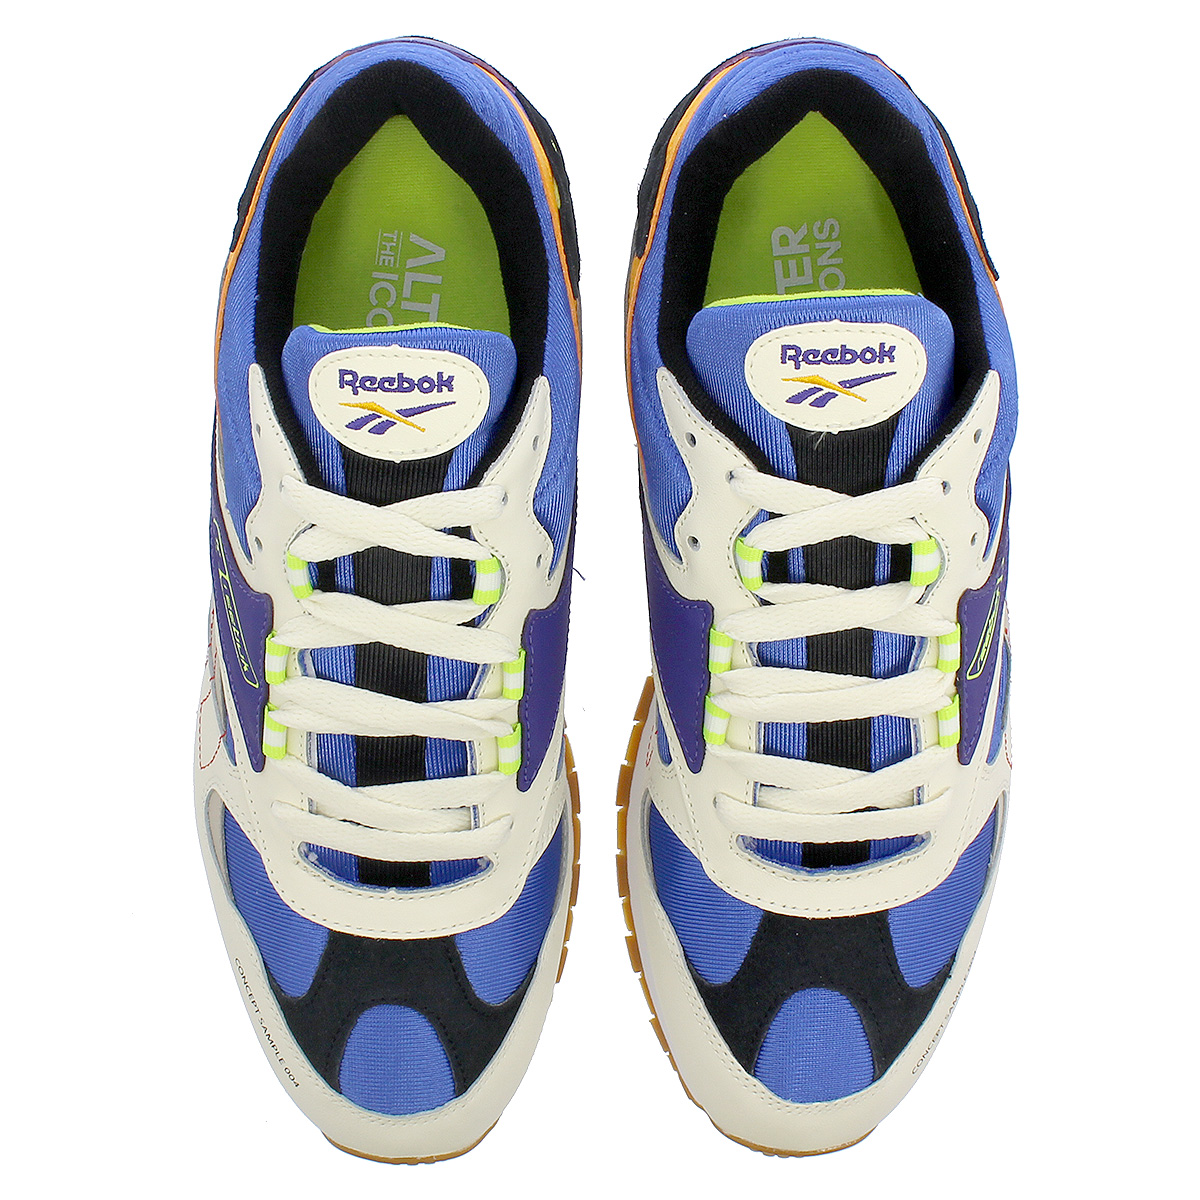 Reebok CL LTHR ATI 90 S Reebok classical music leather Orr terthe icon CREAM  SAND COBALT PURPLE GOLD LIME dv5374 75bbe7d17